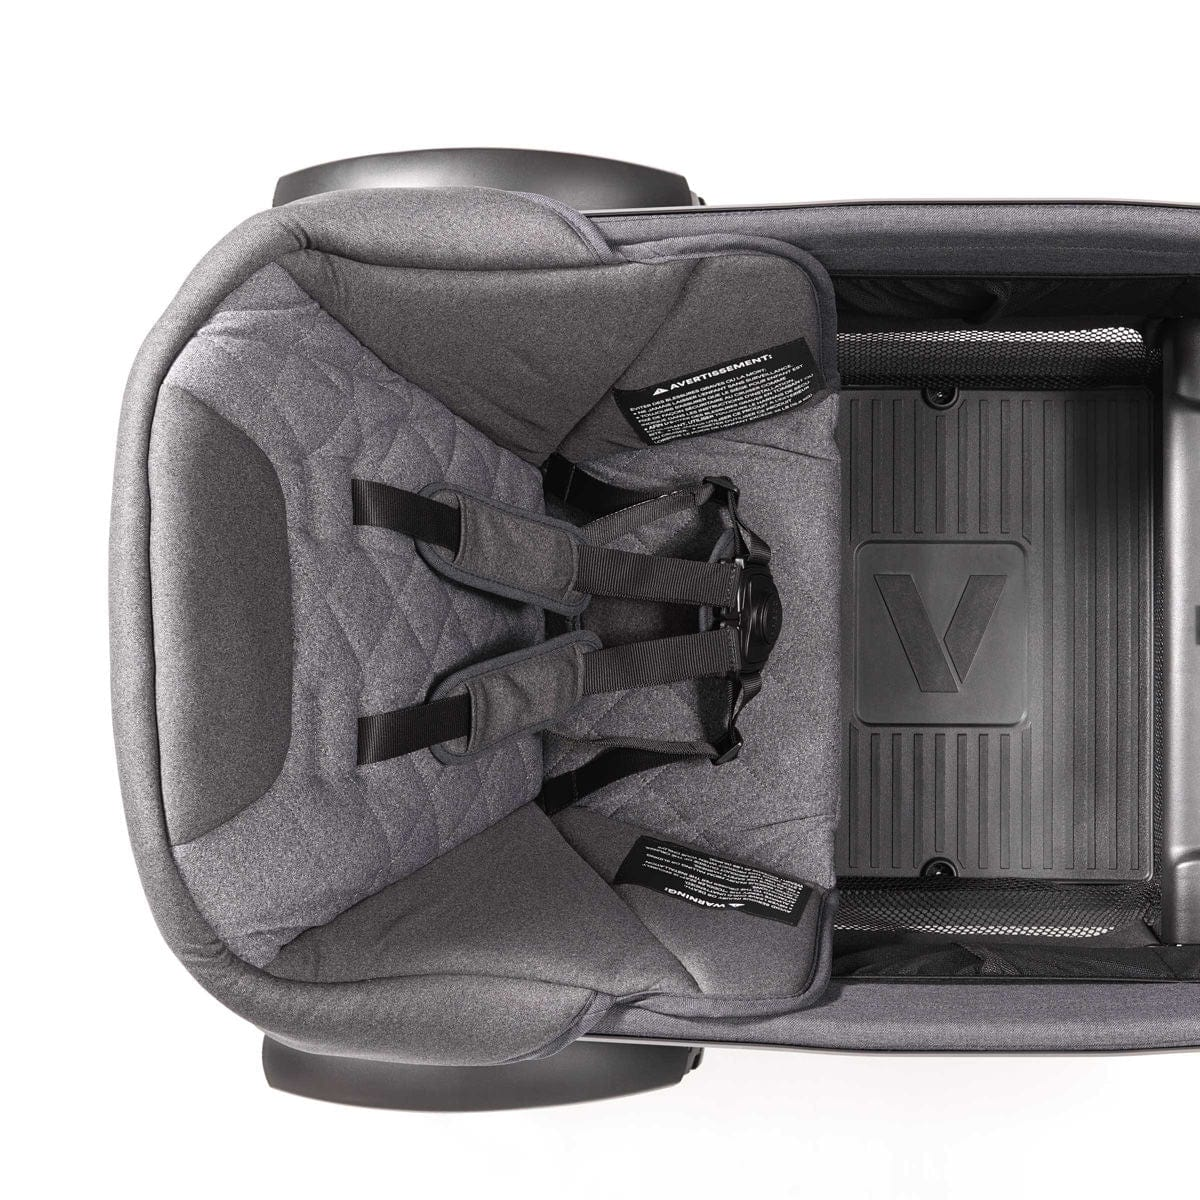 Veer Cruiser Wagon Comfort Seat for Toddlers